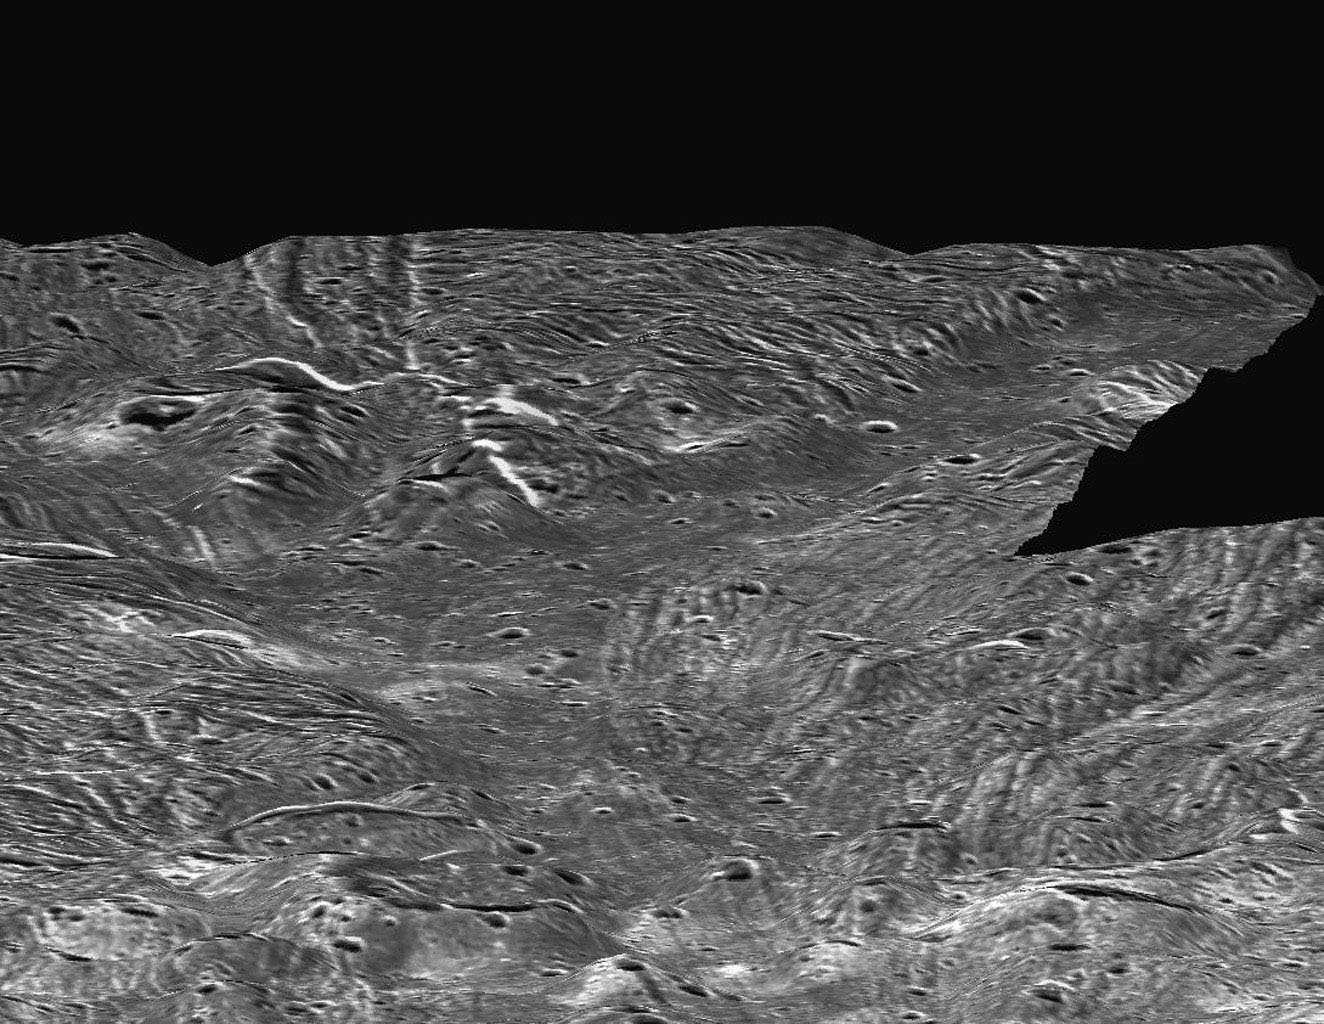 This perspective view, simulating a low altitude flight over the surface of Ganymede, was made possible by topographic analysis of stereo images of the Sippar Sulcus region. Such a view was made possible when NASA's Galileo spacecraft passed Ganymede.